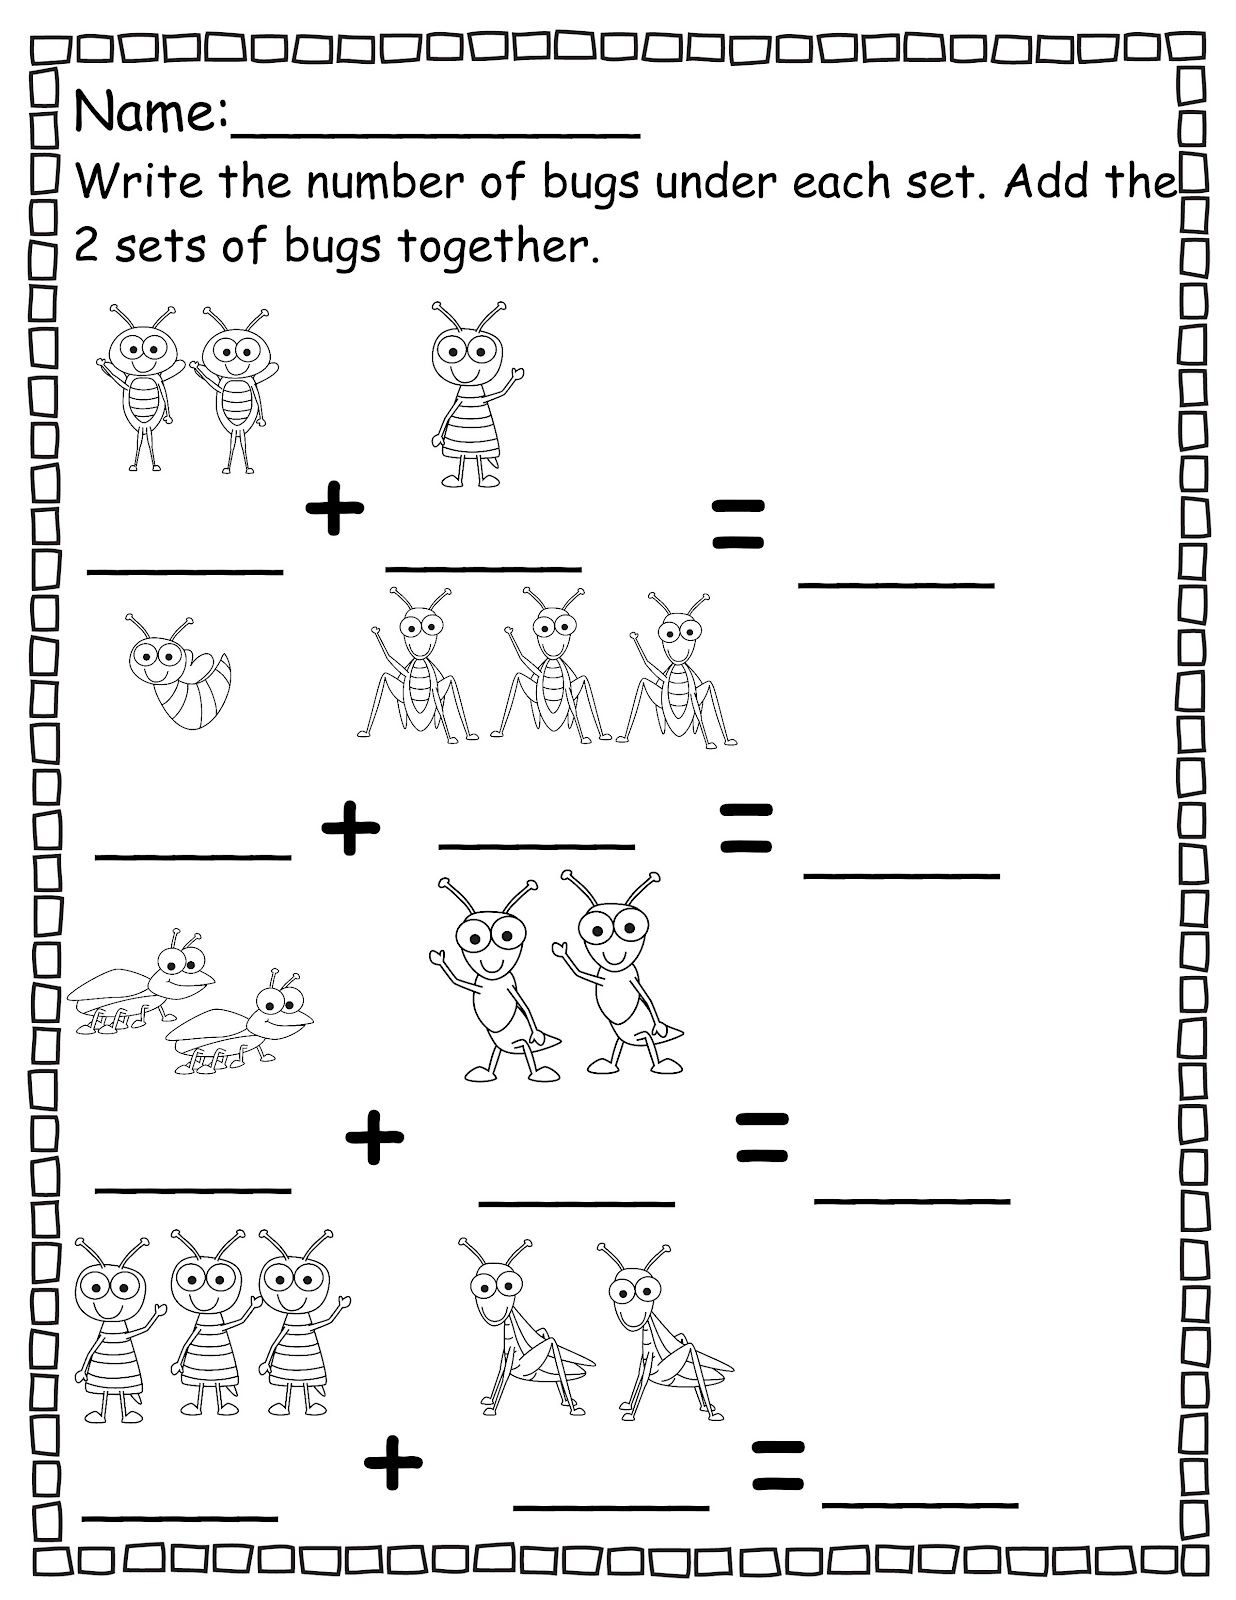 Printables Prek Math Worksheets safarmediapps Worksheets Printables – Pre K Worksheets Math